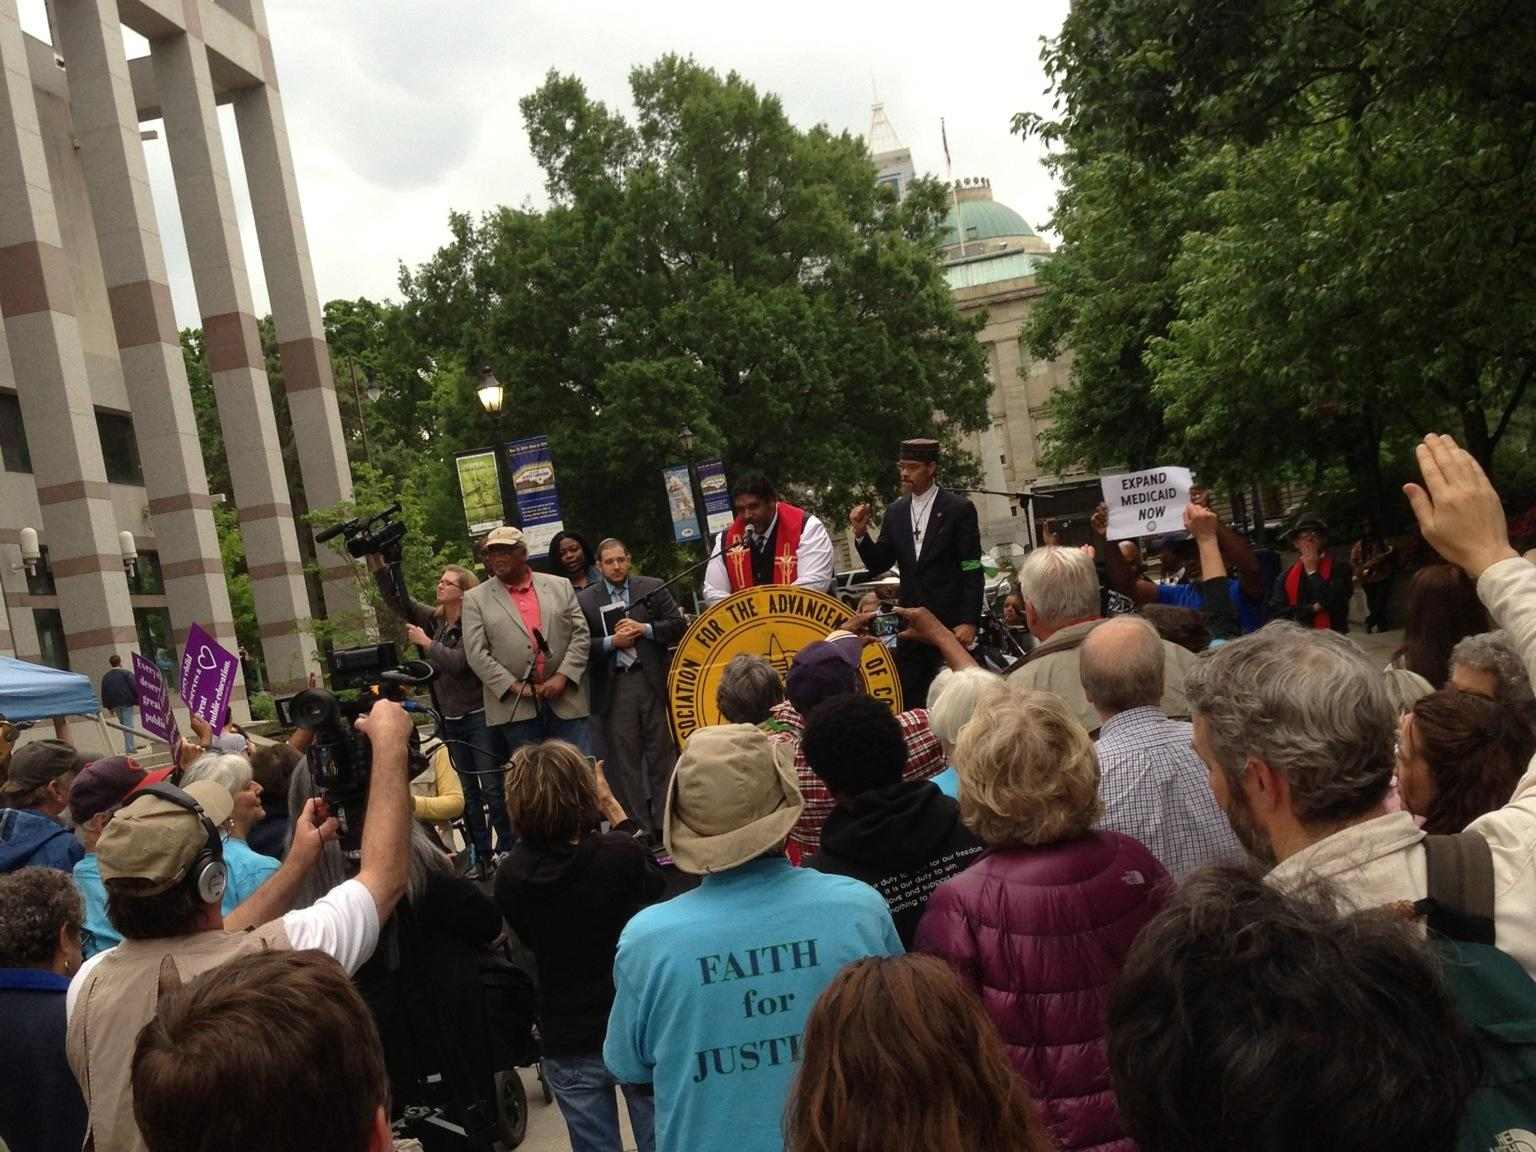 North Carolina NAACP leader of protest movement to step down